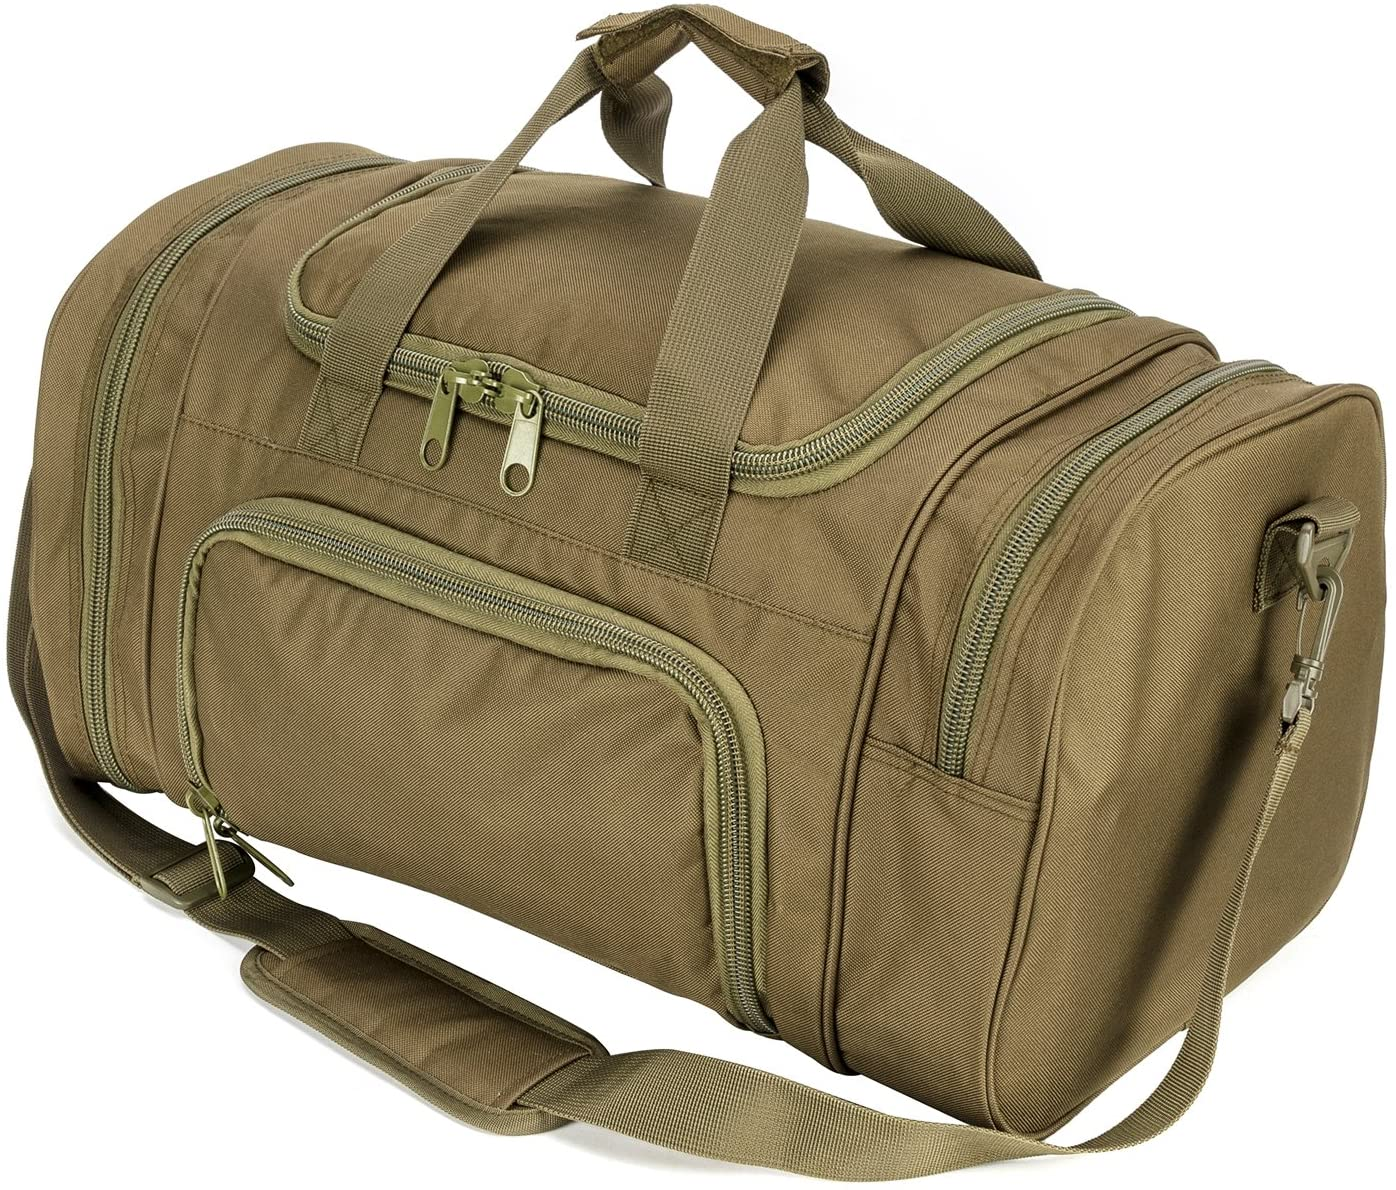 ArmyCamoUSA military tactical duffle